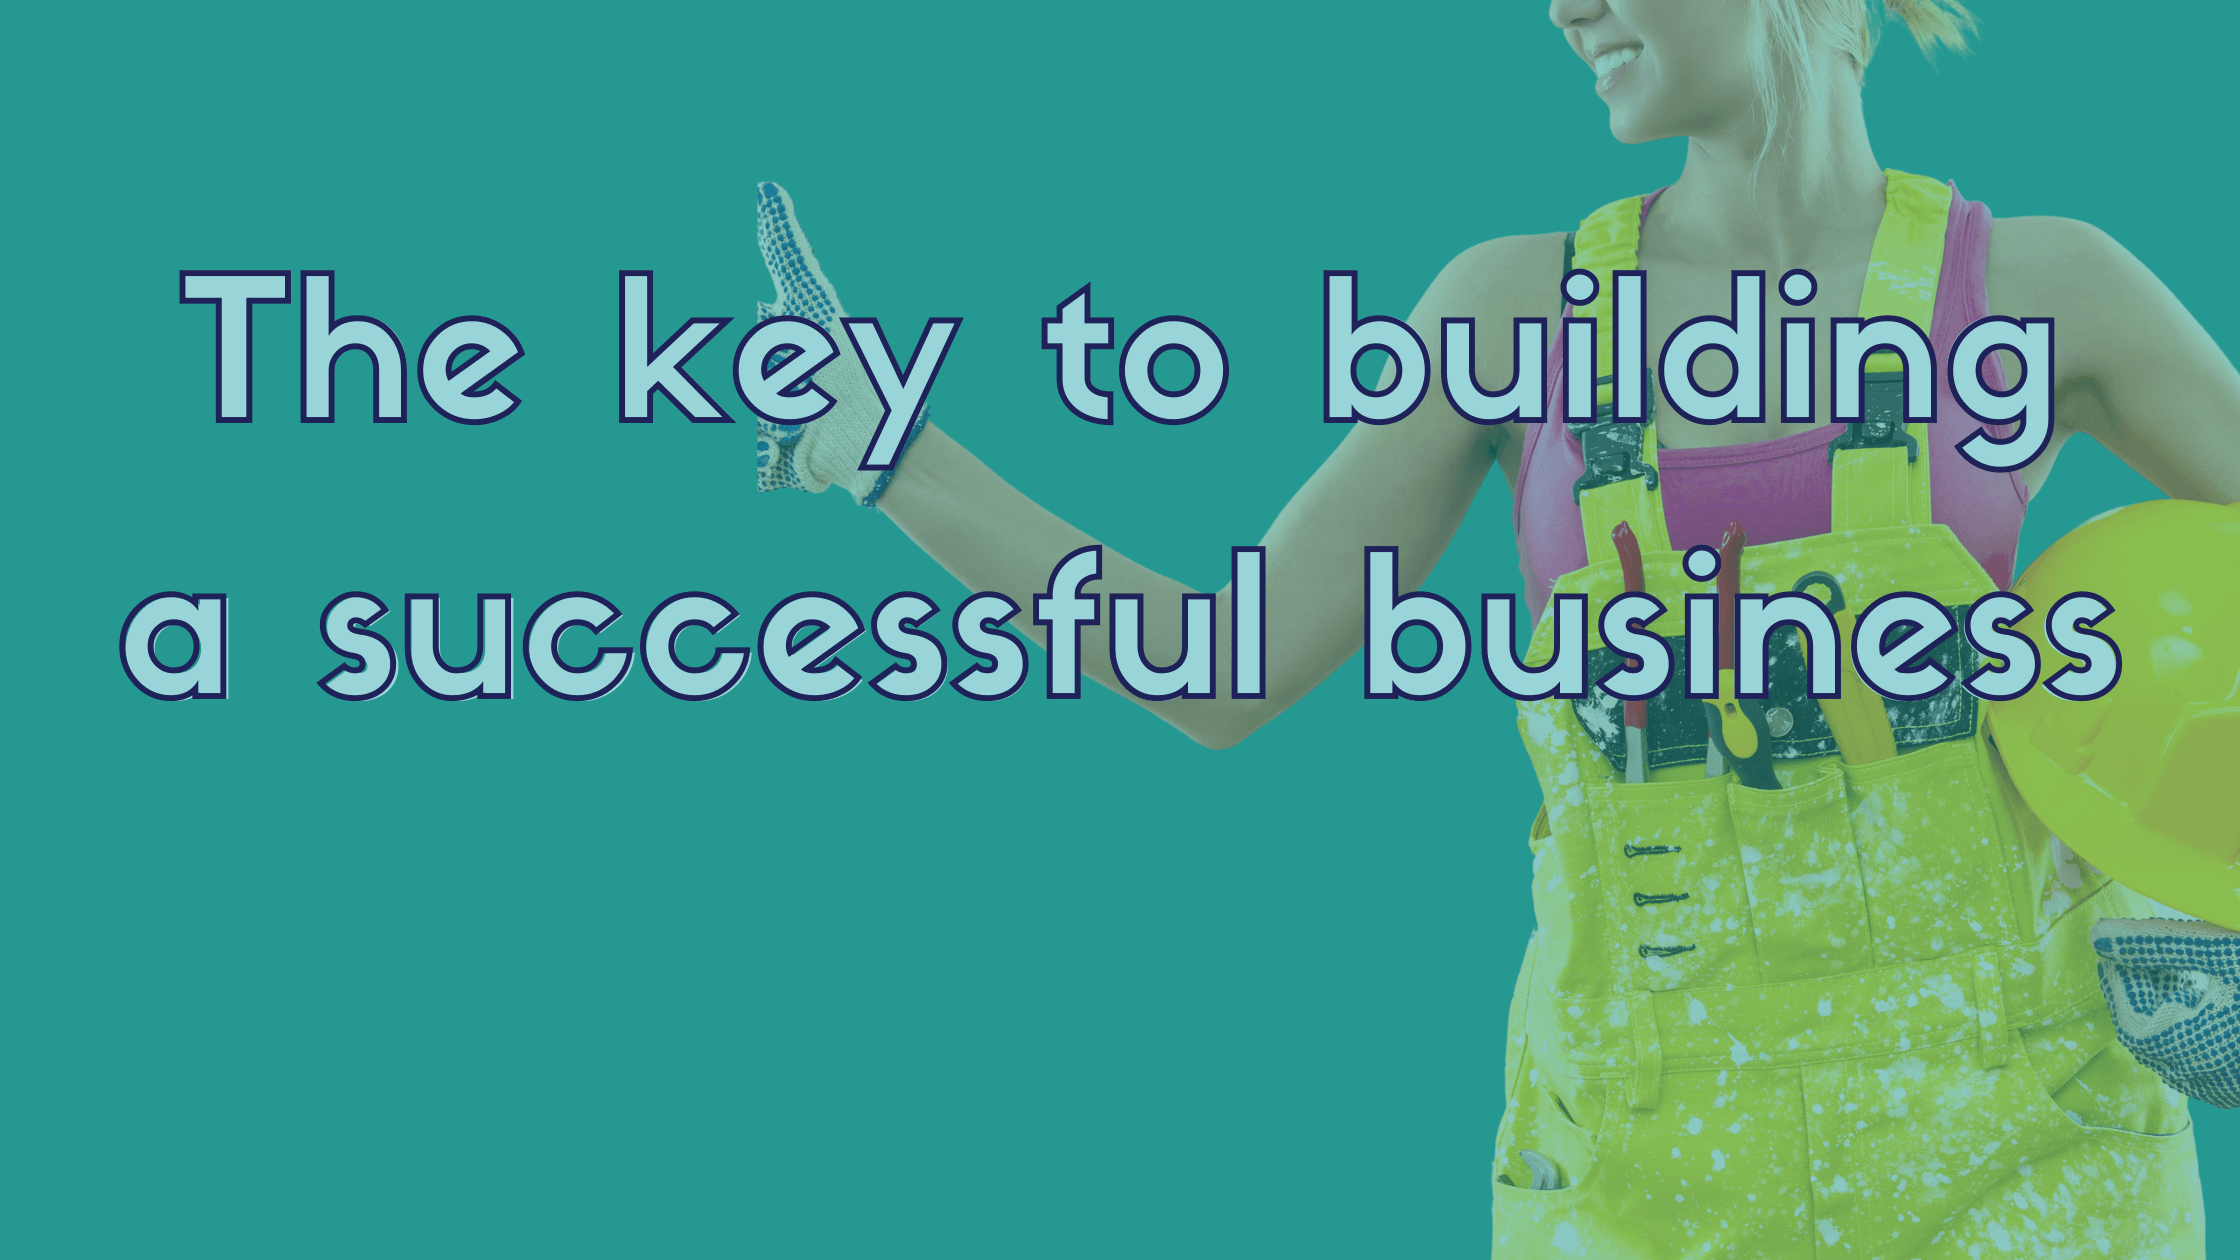 My key to building a successful business